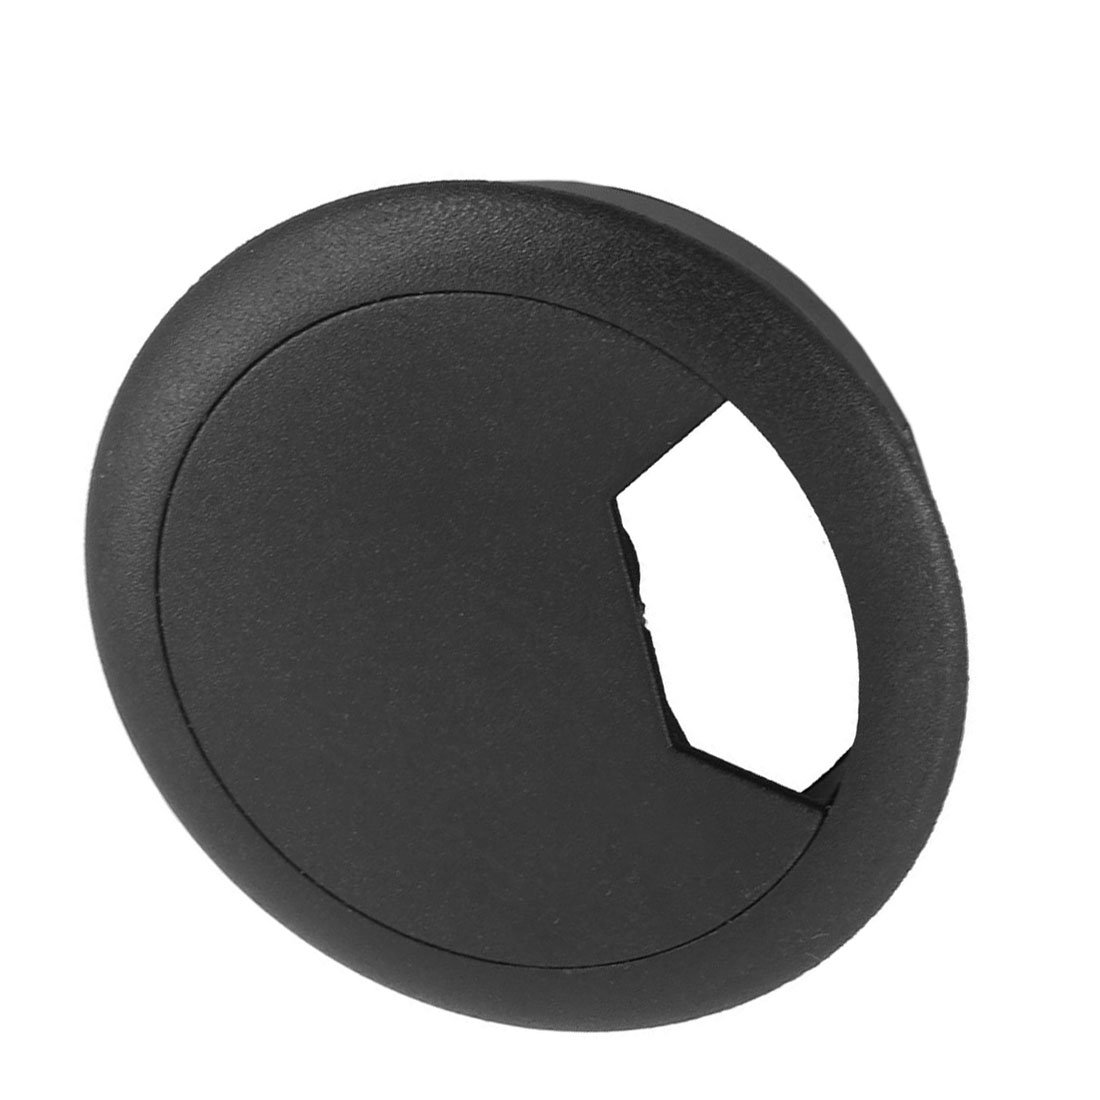 SODIAL(R) Hole Cover 2 Pcs 50mm Diameter Desk Wire Cord Cable Grommets Hole Cover Black by SODIAL(R) (Image #3)